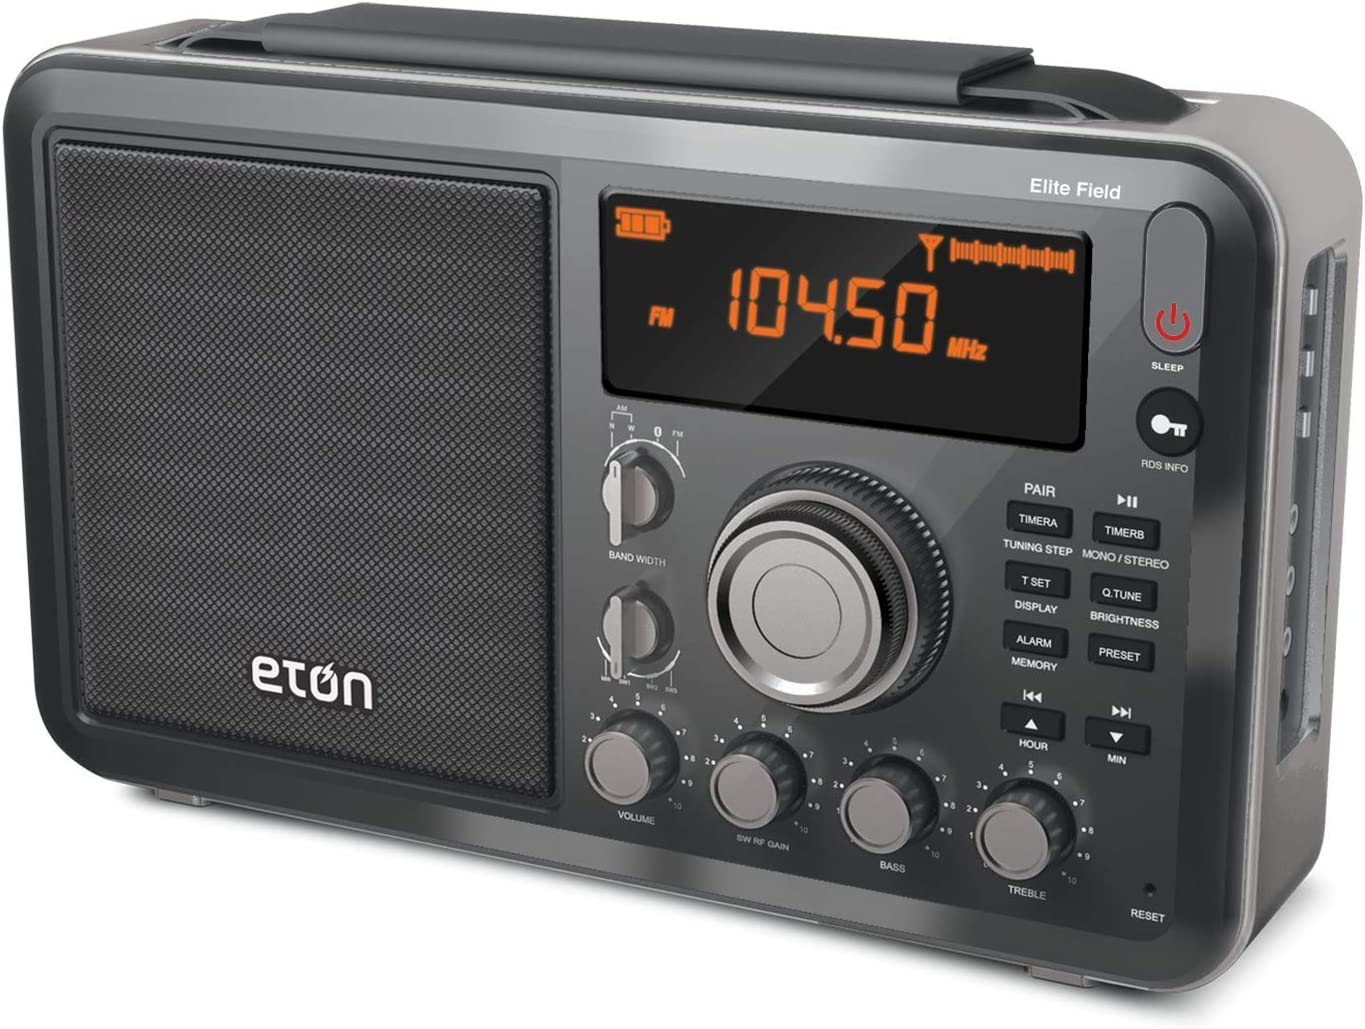 Eton NELITEFIELD Elite Field AM/FM/Shortwave Desktop Radio with Bluetooth:  Amazon.ca: Electronics